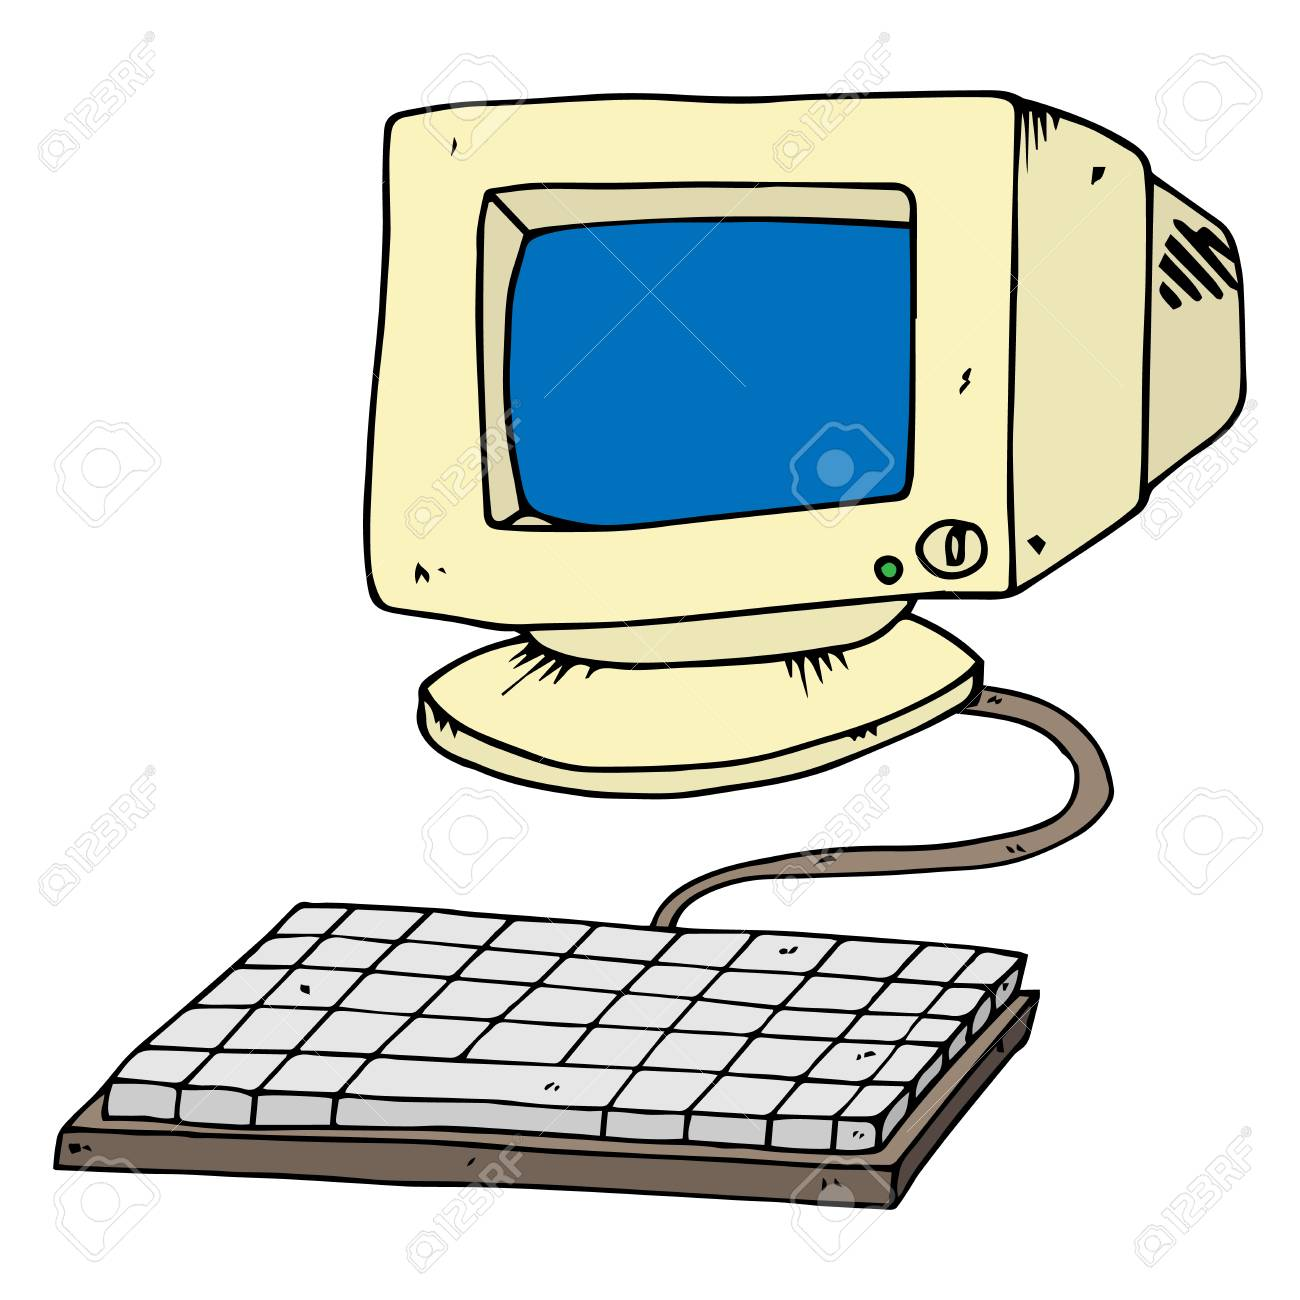 Crt Monitor Old Computer Monitor With Keyboard Vector Illustration Royalty Free Cliparts Vectors And Stock Illustration Image 110722277